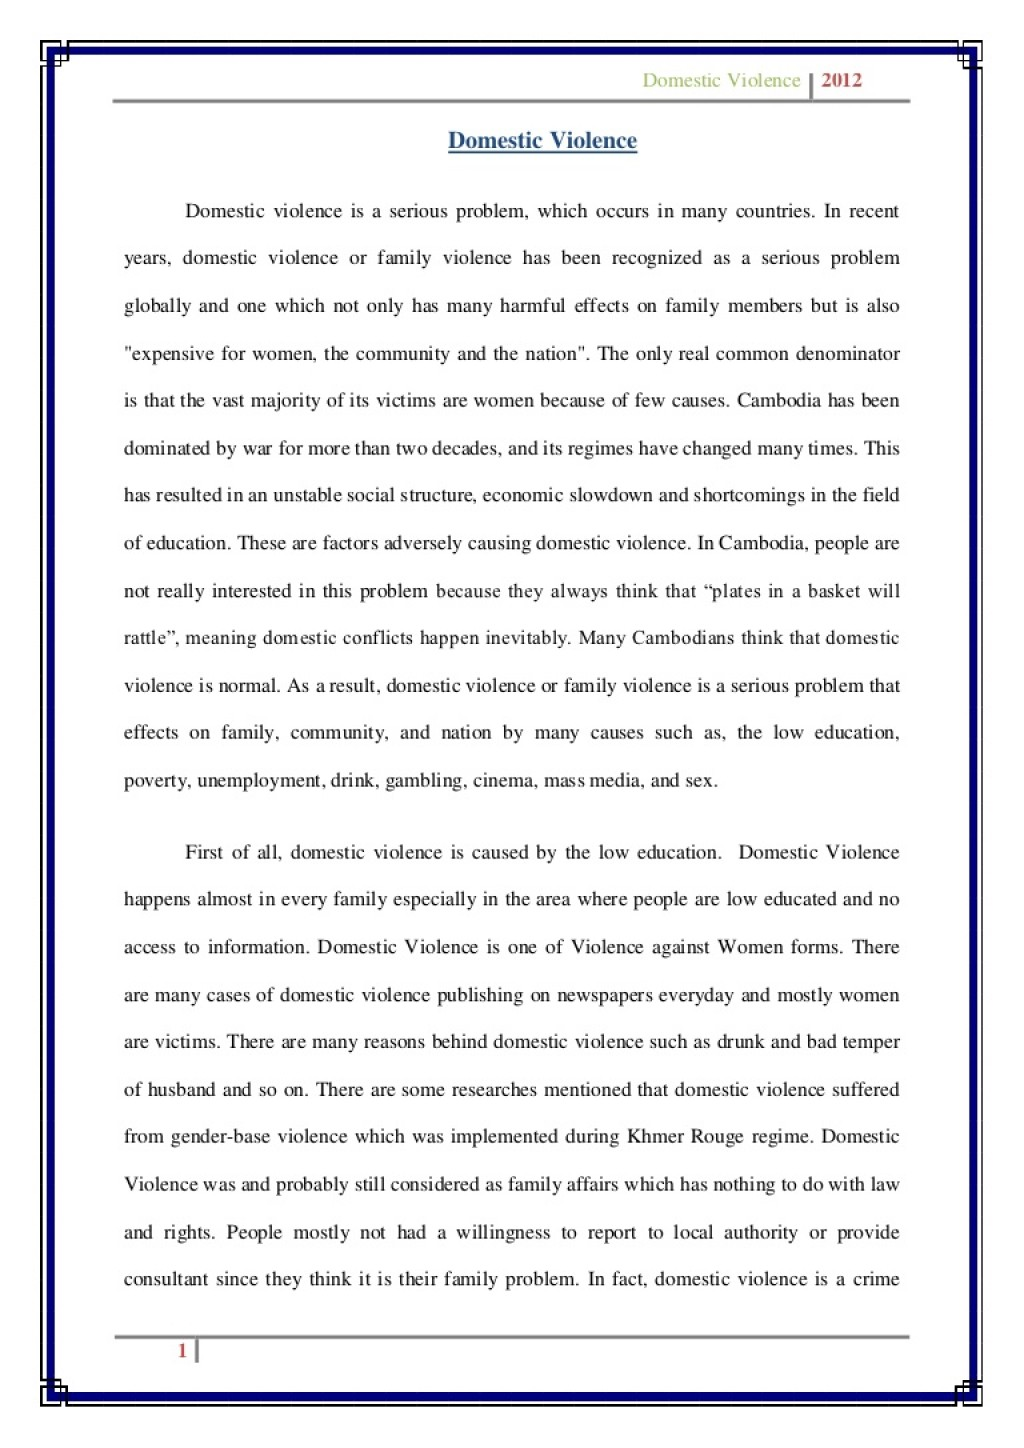 003 Stunning Domestic Violence Essay Picture  Persuasive Topic QuestionLarge